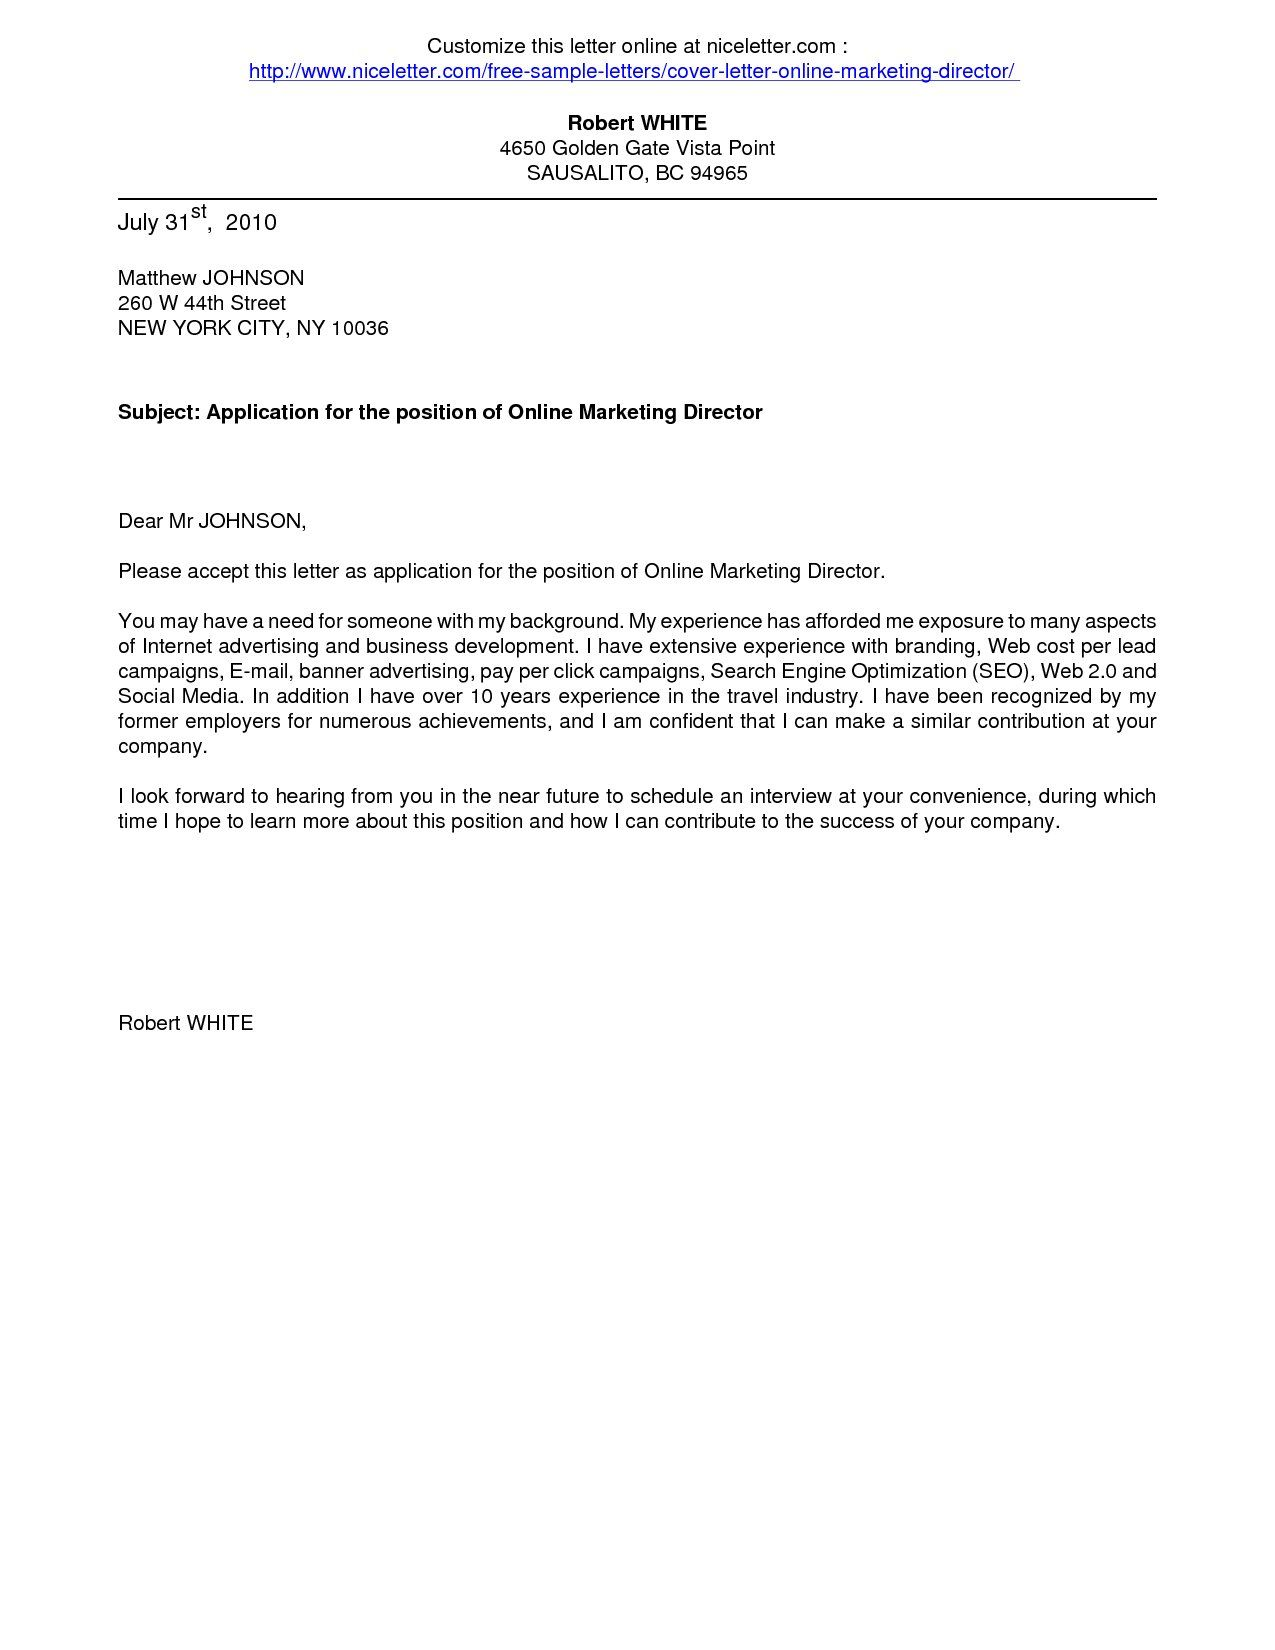 Cover Letters Cover Letter For Online Application Business